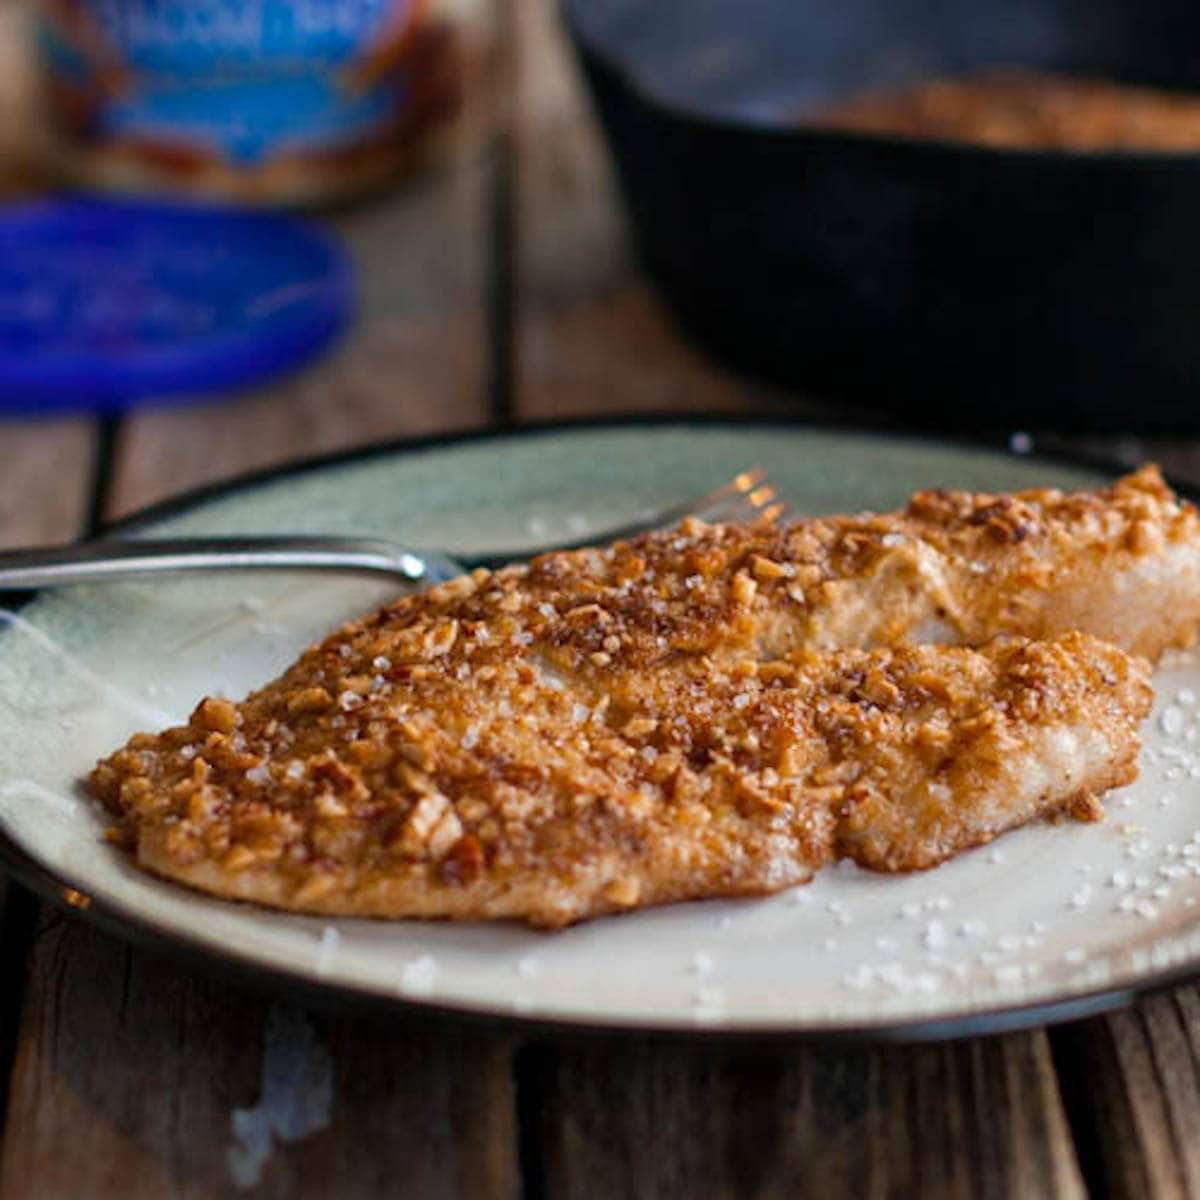 Almond crusted tilapia on a plate with a fork.